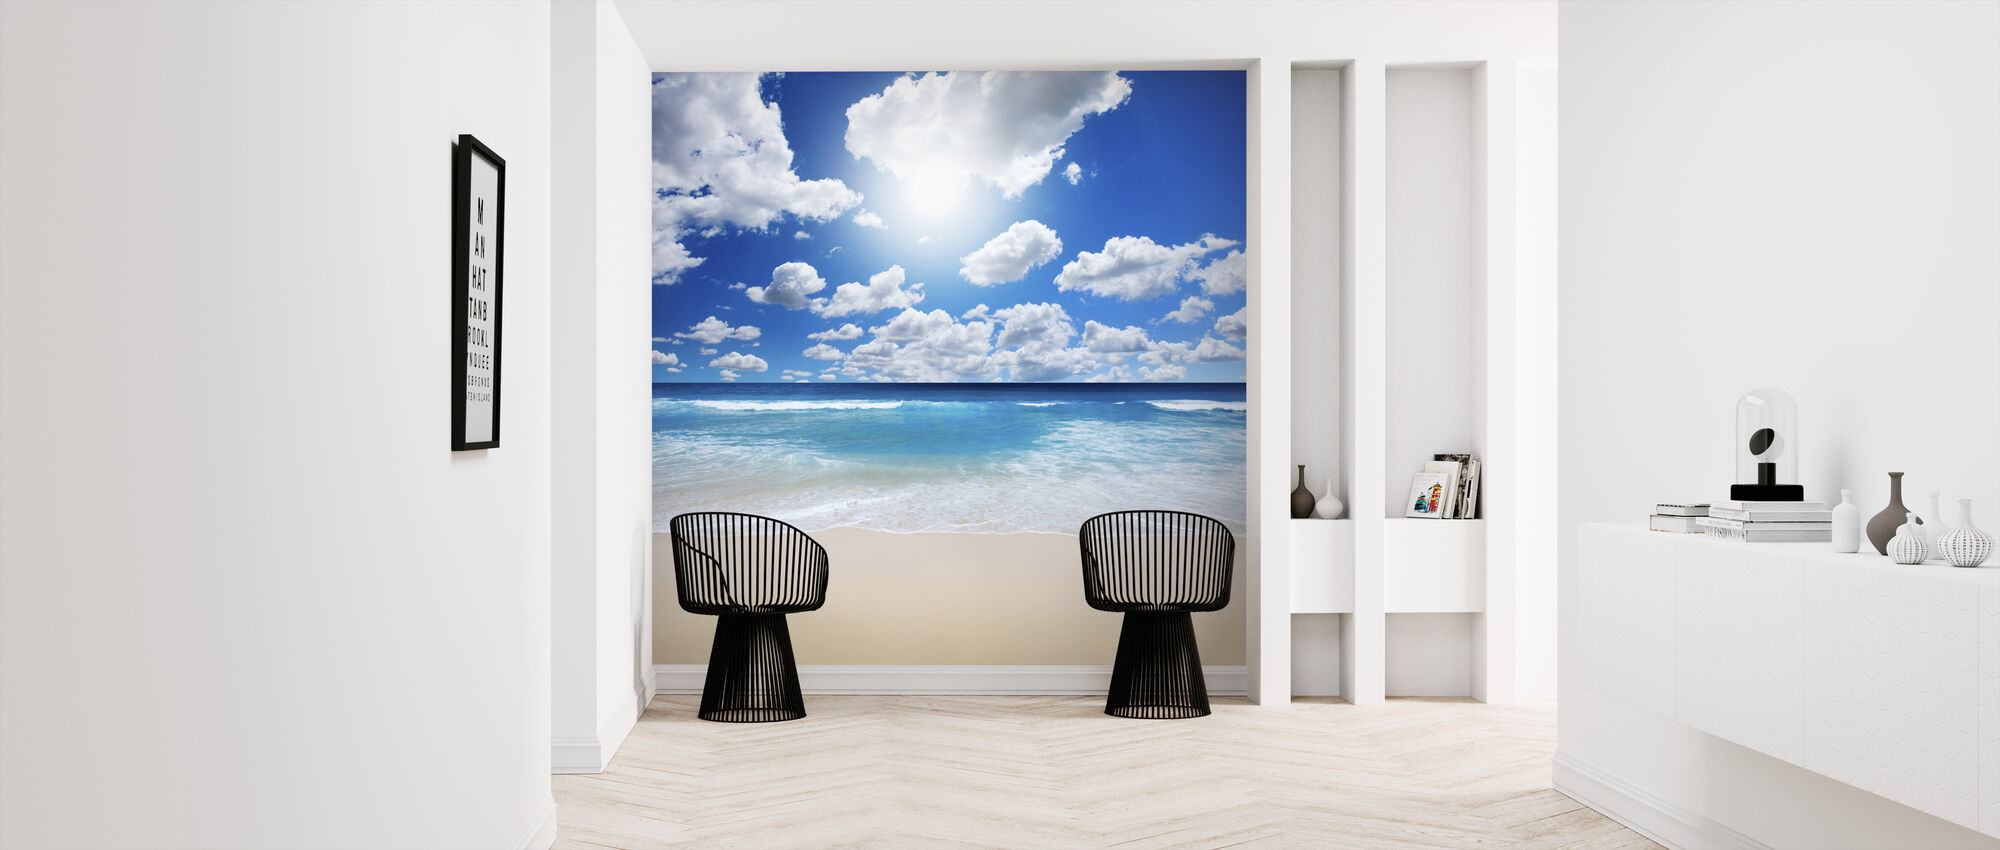 Summertime at the Beach - Wallpaper - Hallway